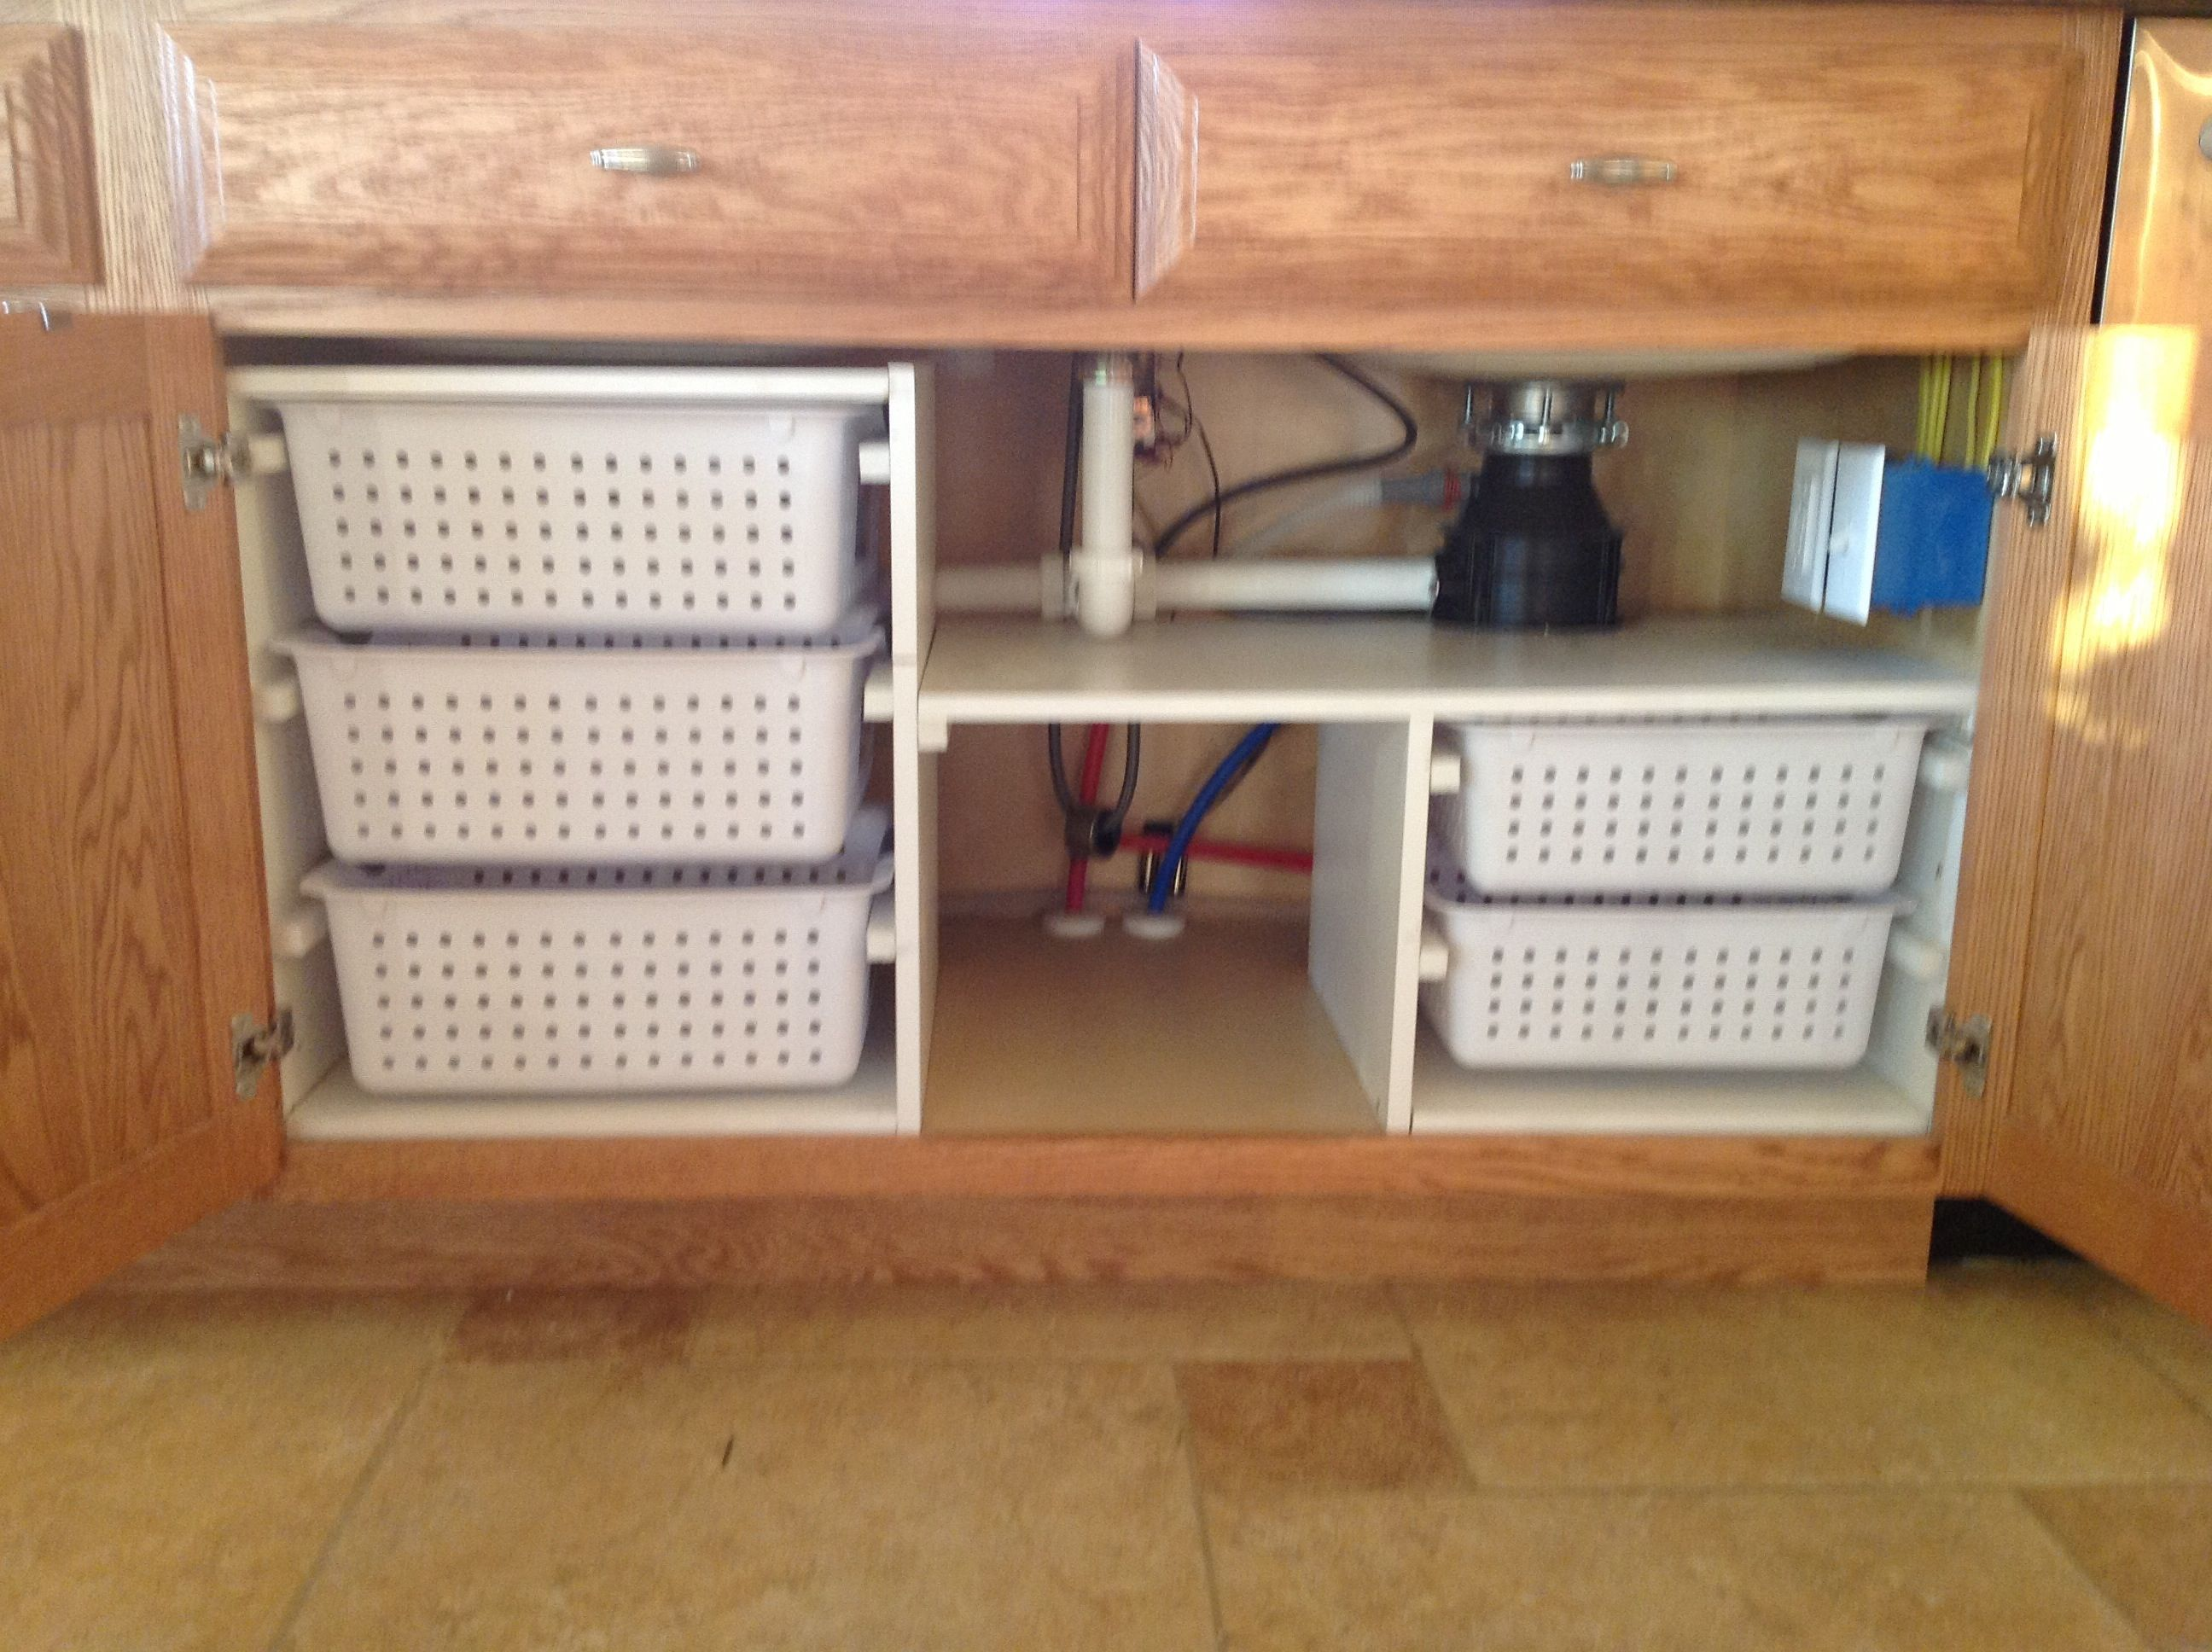 Under Kitchen Sink Organization My Husband Built For: kitchen under cabinet storage ideas